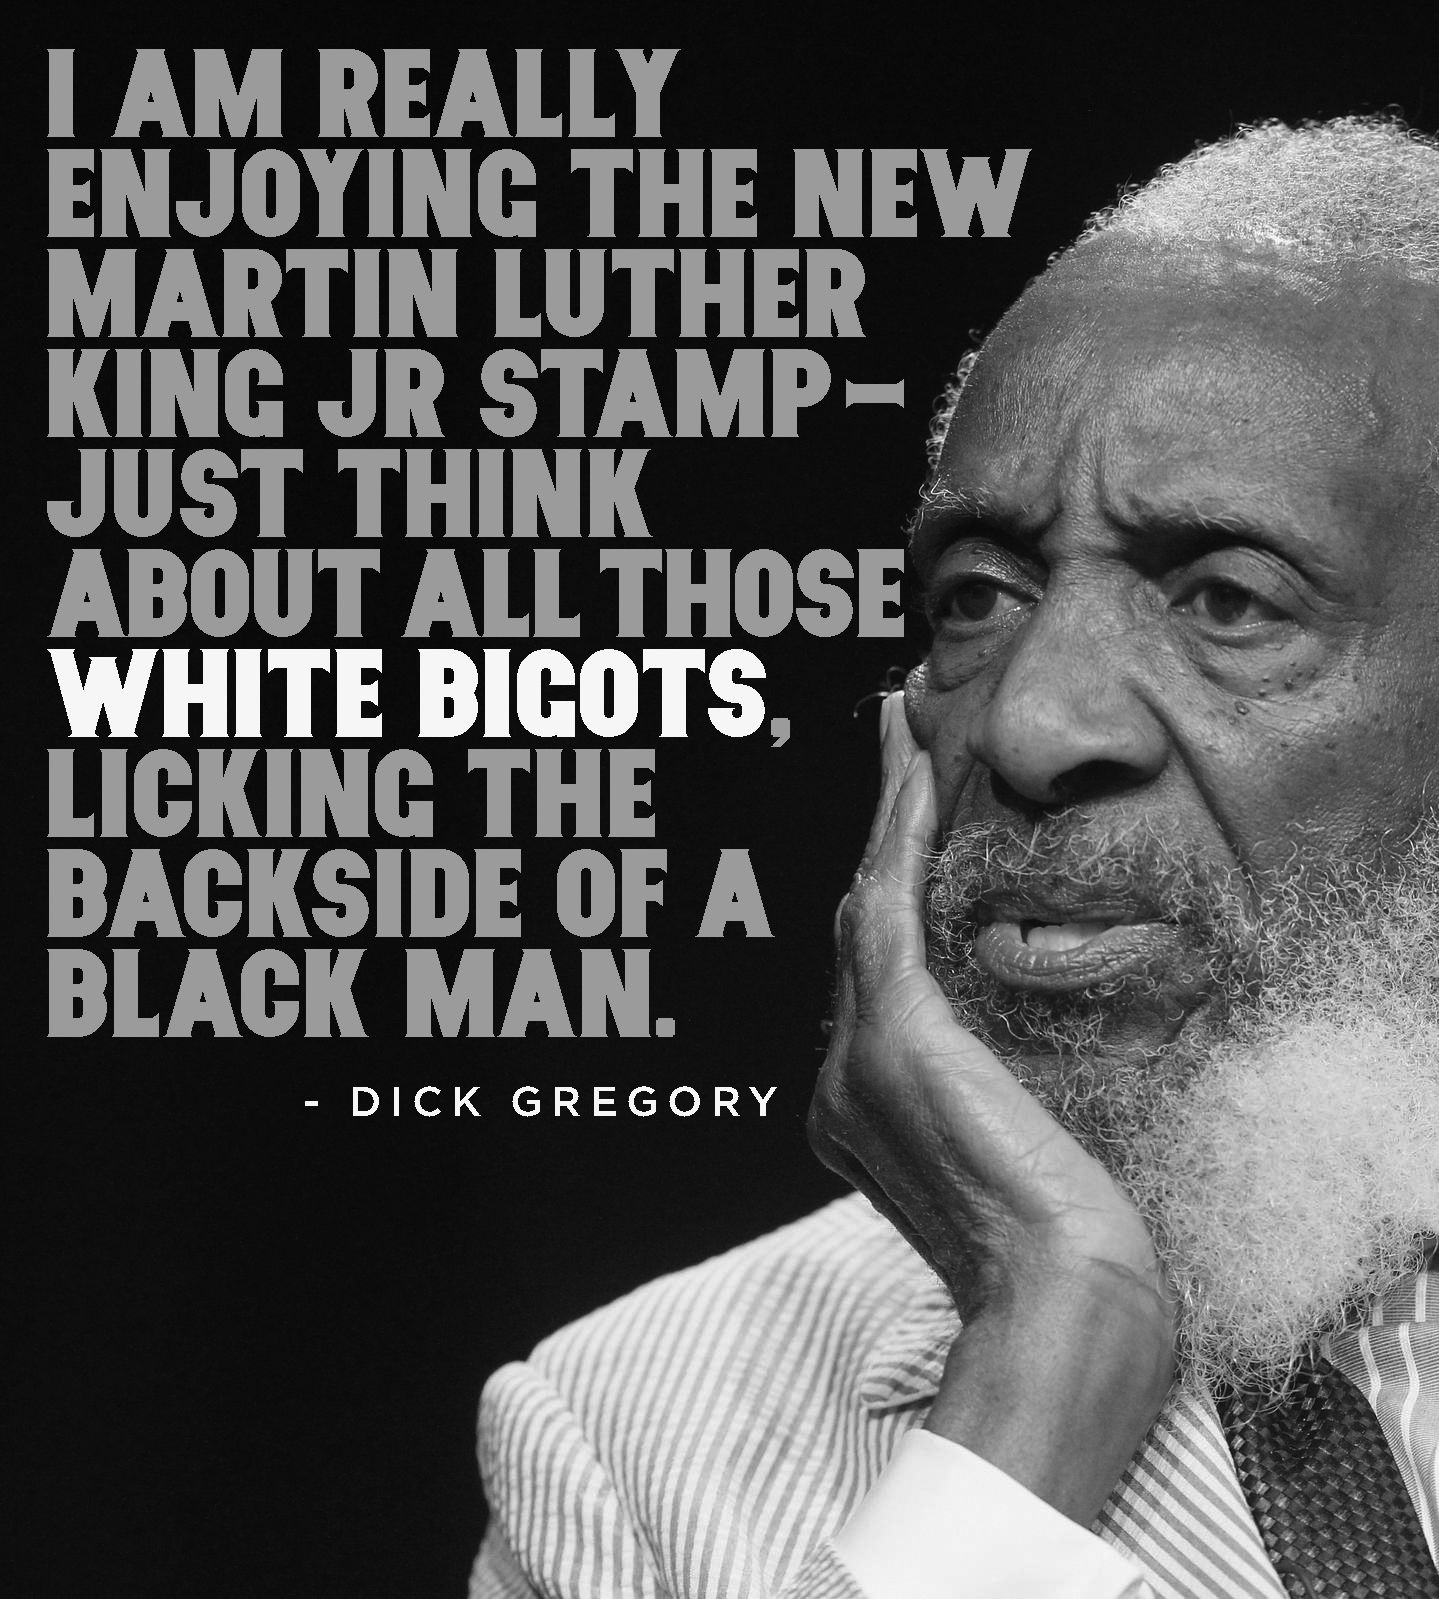 gregory Quotes on dick rasism from